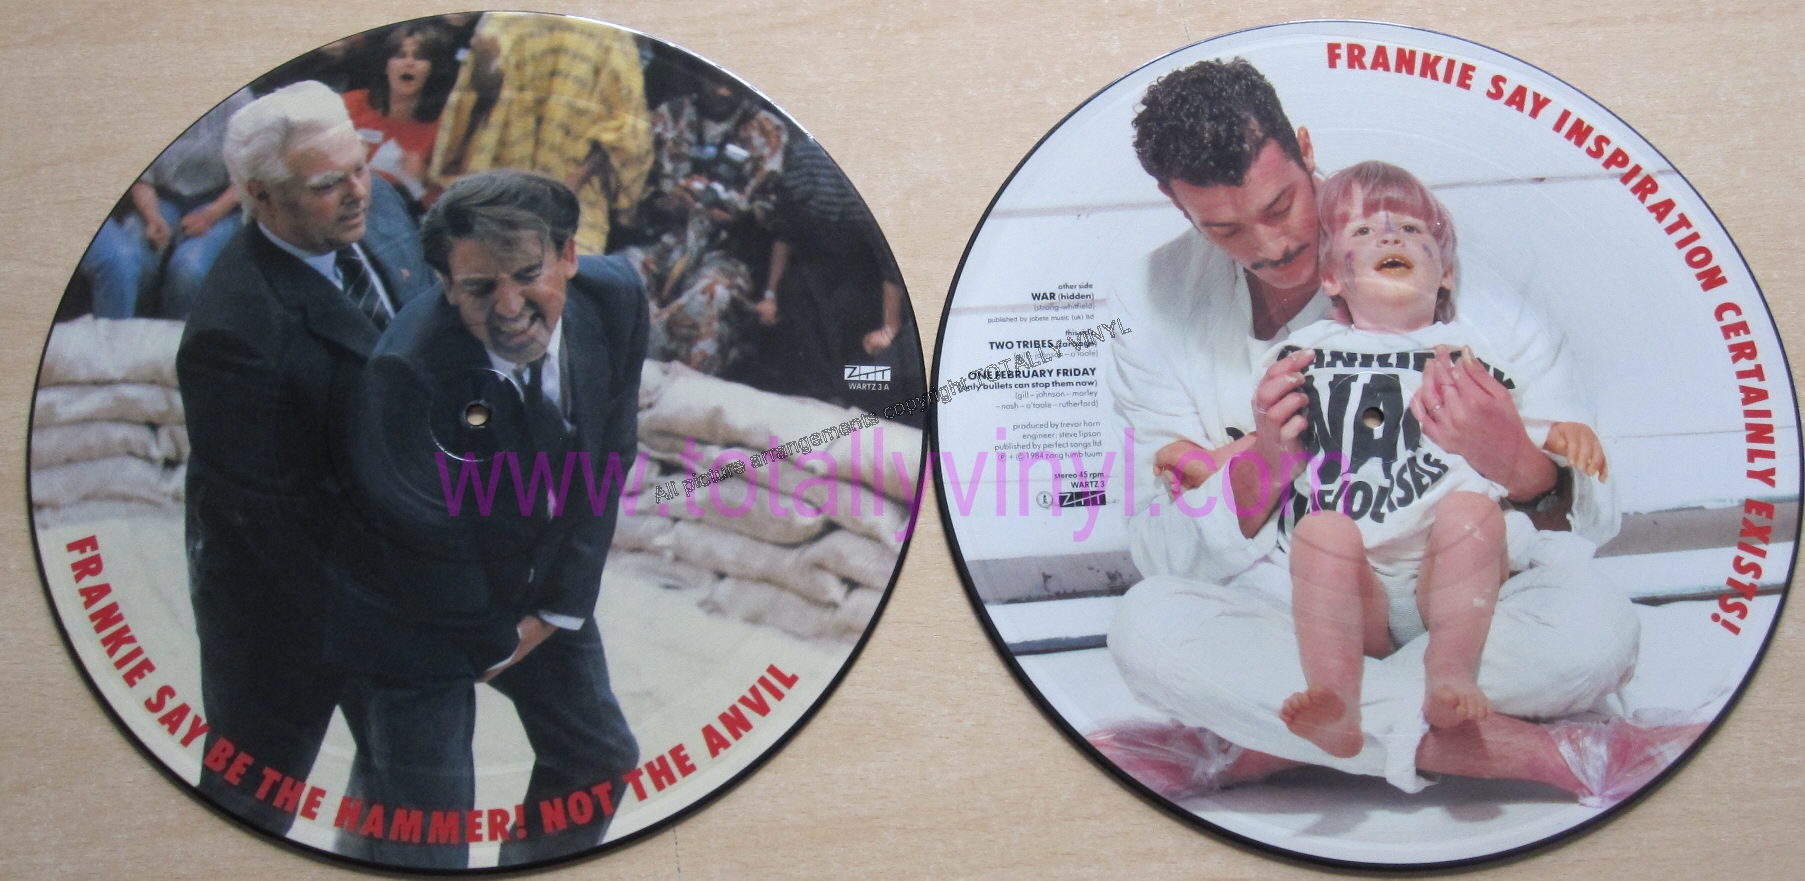 FRANKIE_GOES_TO_HOLLYWOOD_TWO_TRIBES_PICTURE_DISC_12.jpg